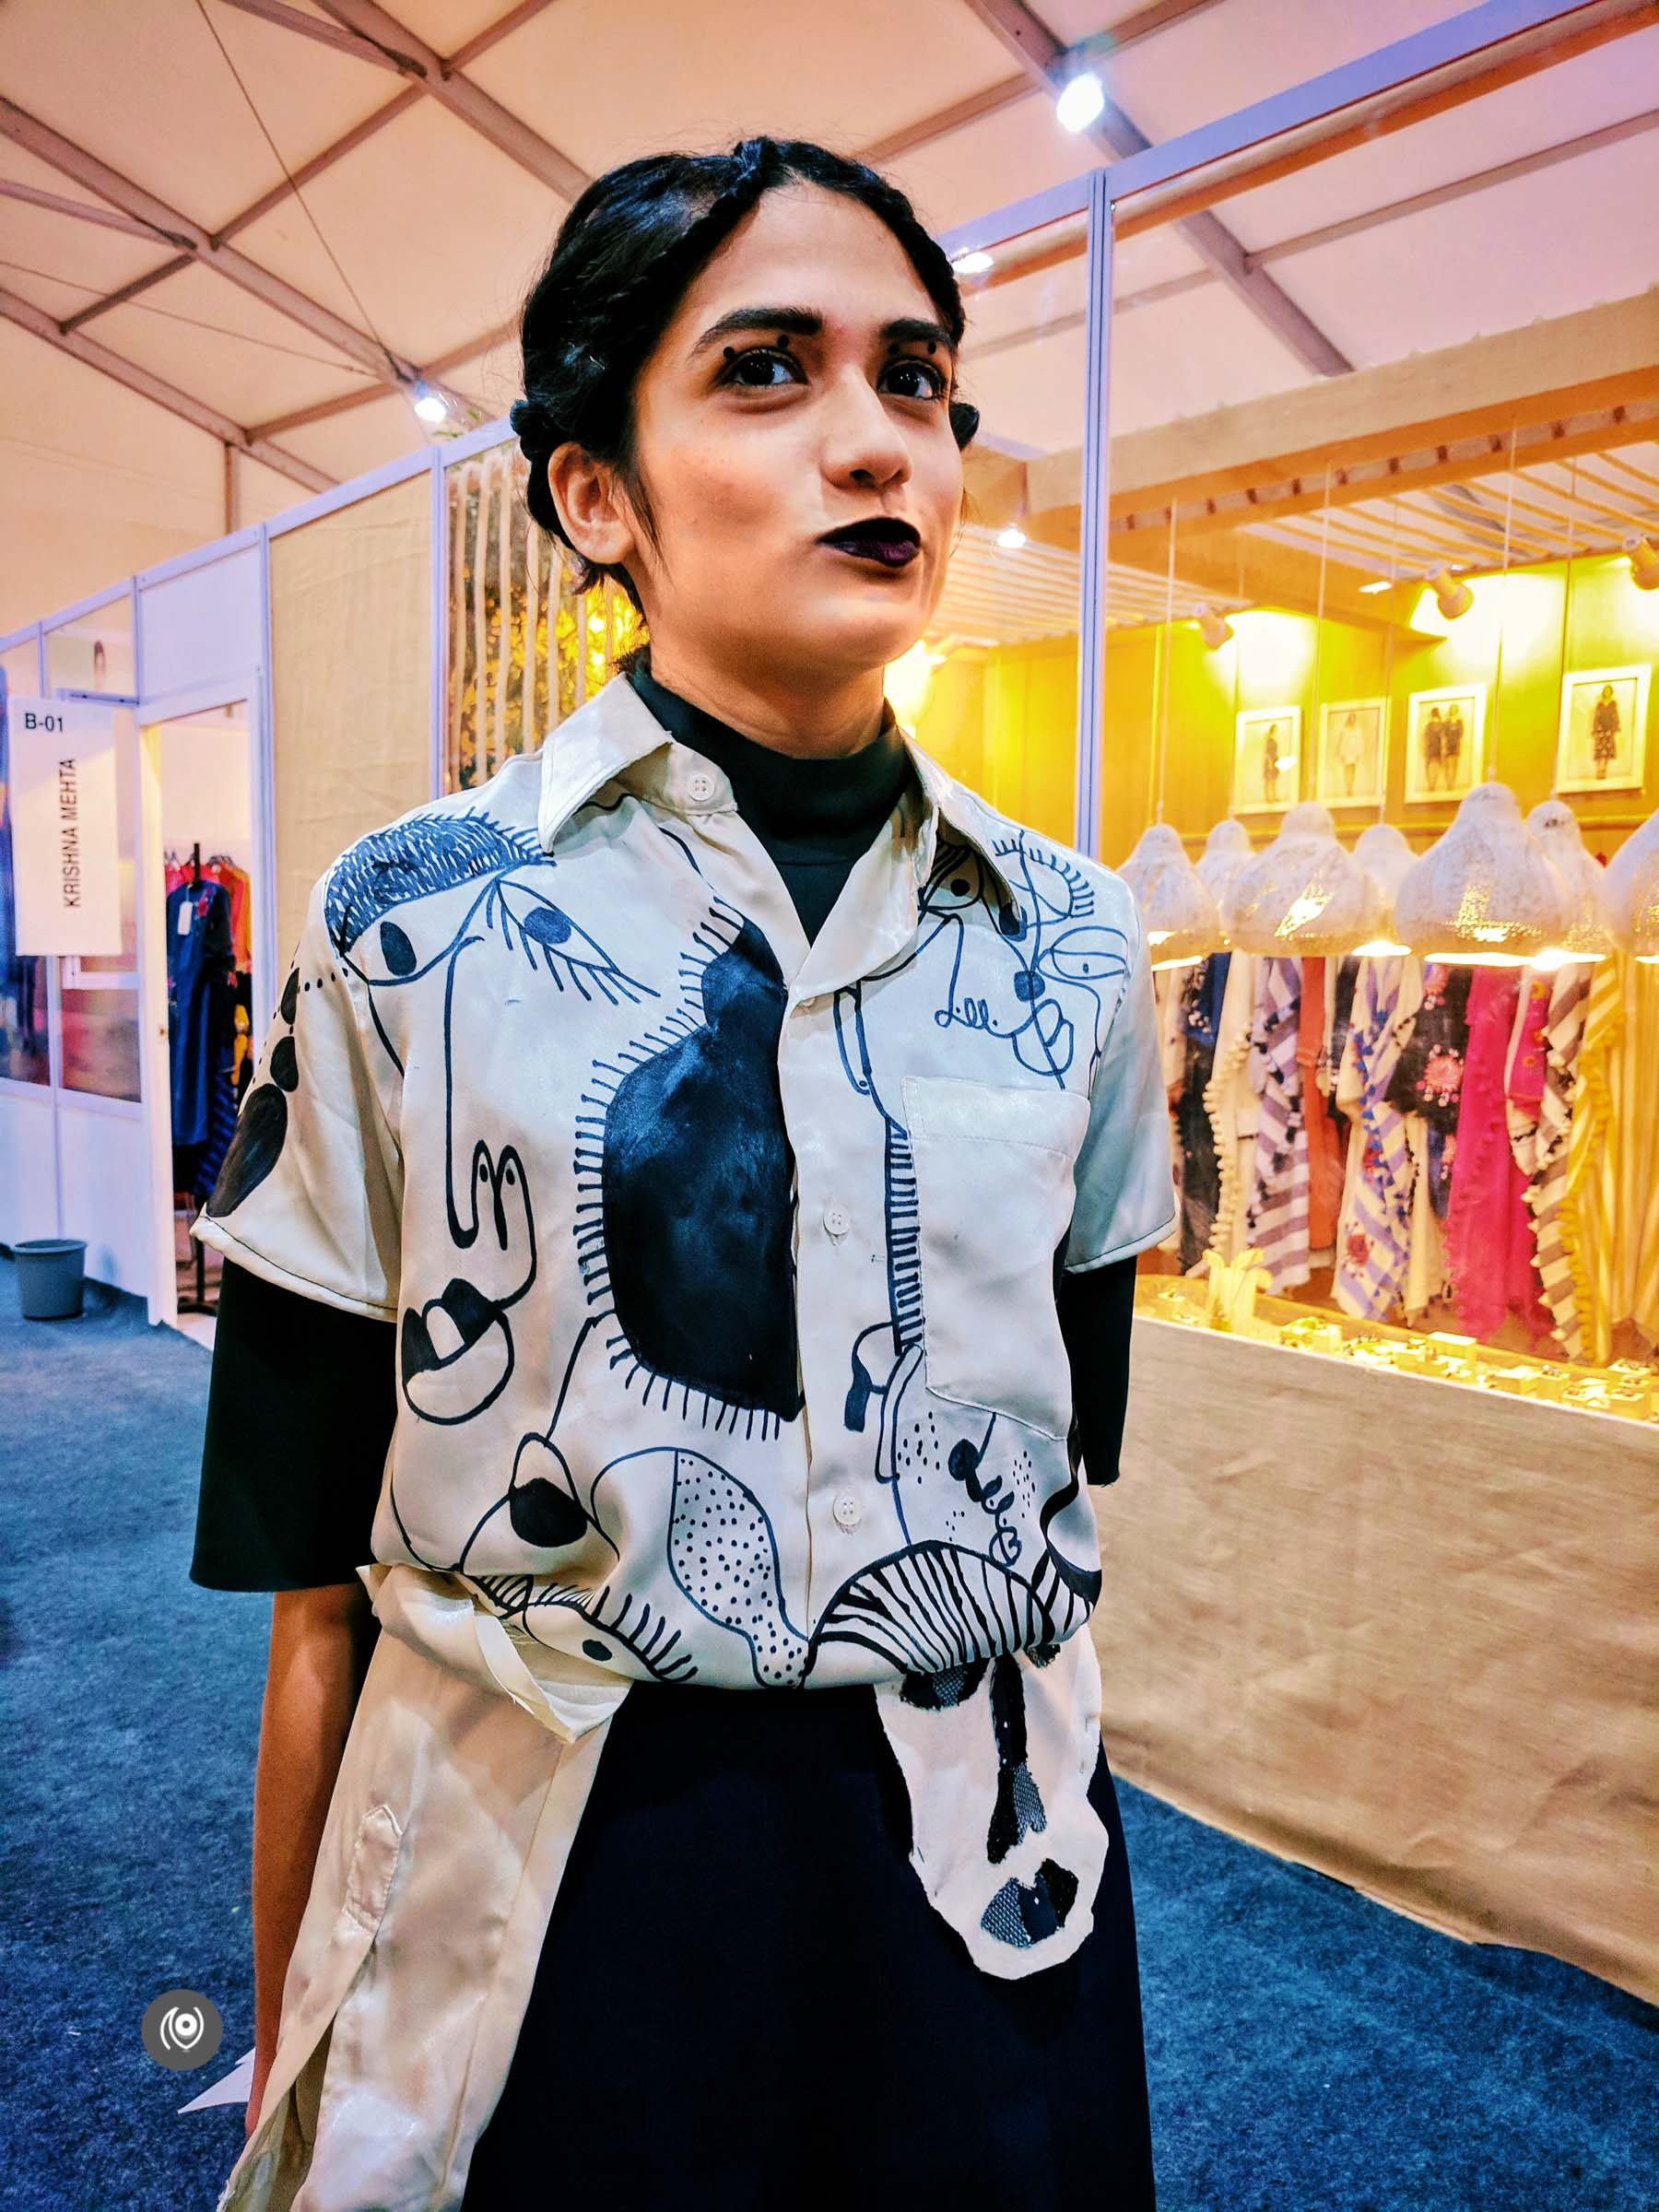 Naina.co, Naina Redhu, EyesForFashion, Amazon India Fashion Week, Spring Summer 2018, AIFWSS18, AIFW, New Delhi, India Fashion Week, NSIC Exhibition Grounds, Wendell Rodricks, Hemant Nandita, Shivan Narresh, Ambar Pariddi Sahai, Anupamaa, Fashion Designers, Street Style